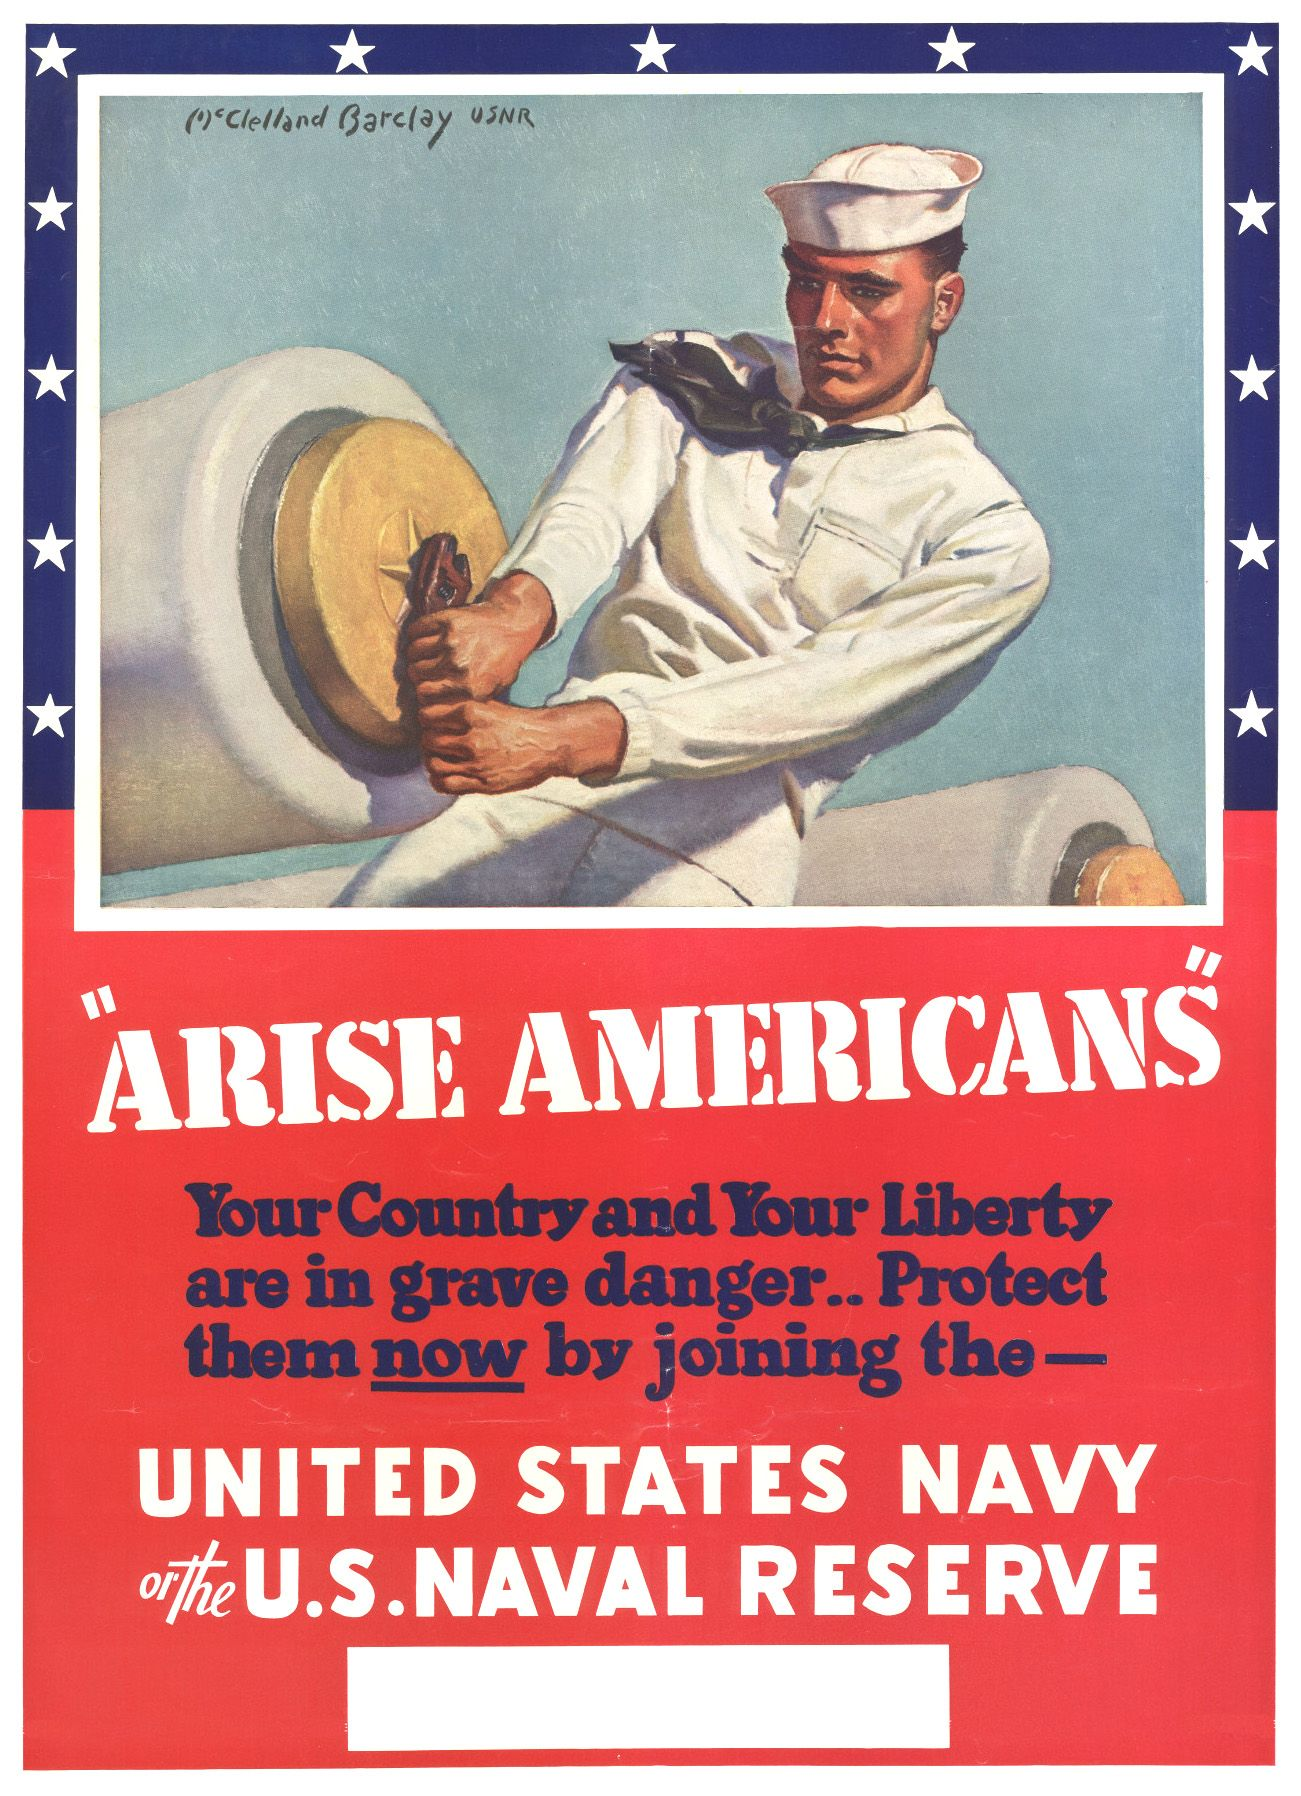 Pin by Sharon (Pietz) Decker on WWII Navy Posters | Pinterest ...